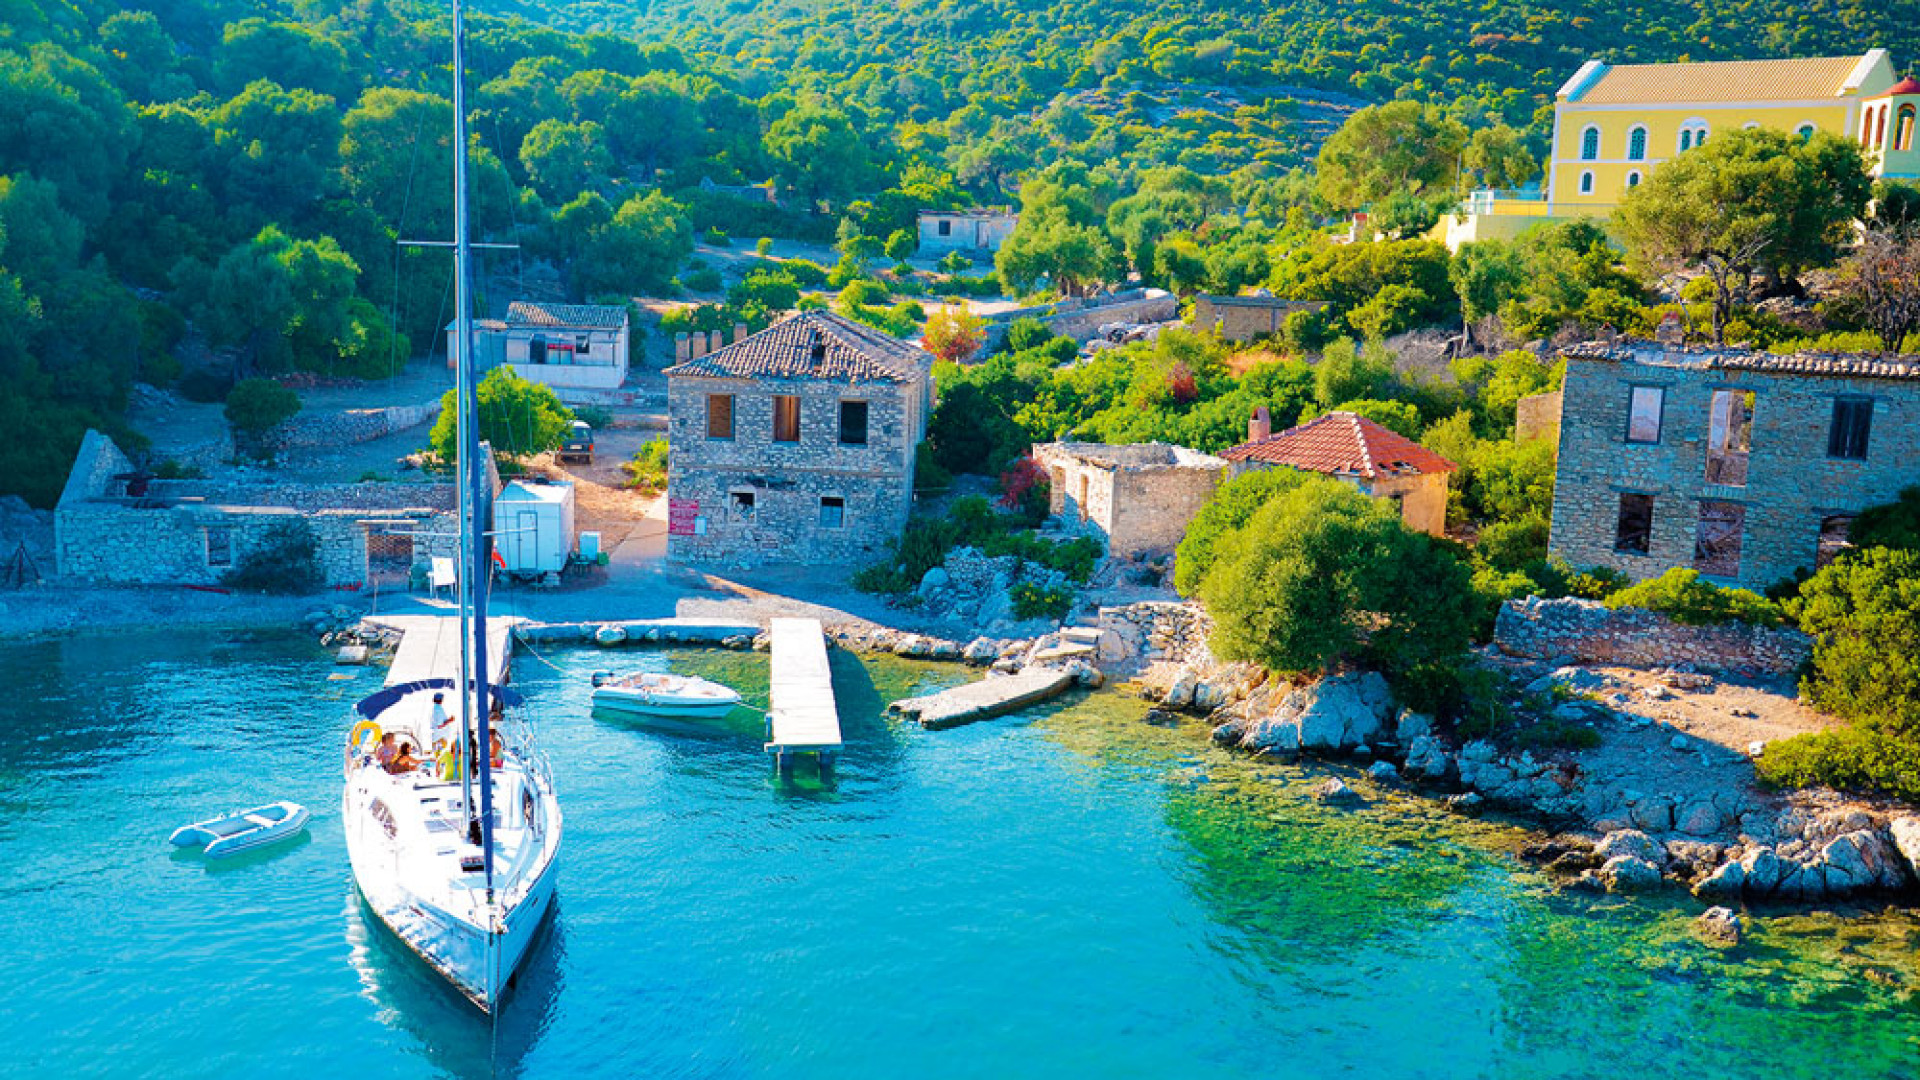 Sailing holidays in the Greek islands of Kioni, Kastos and Kalamos